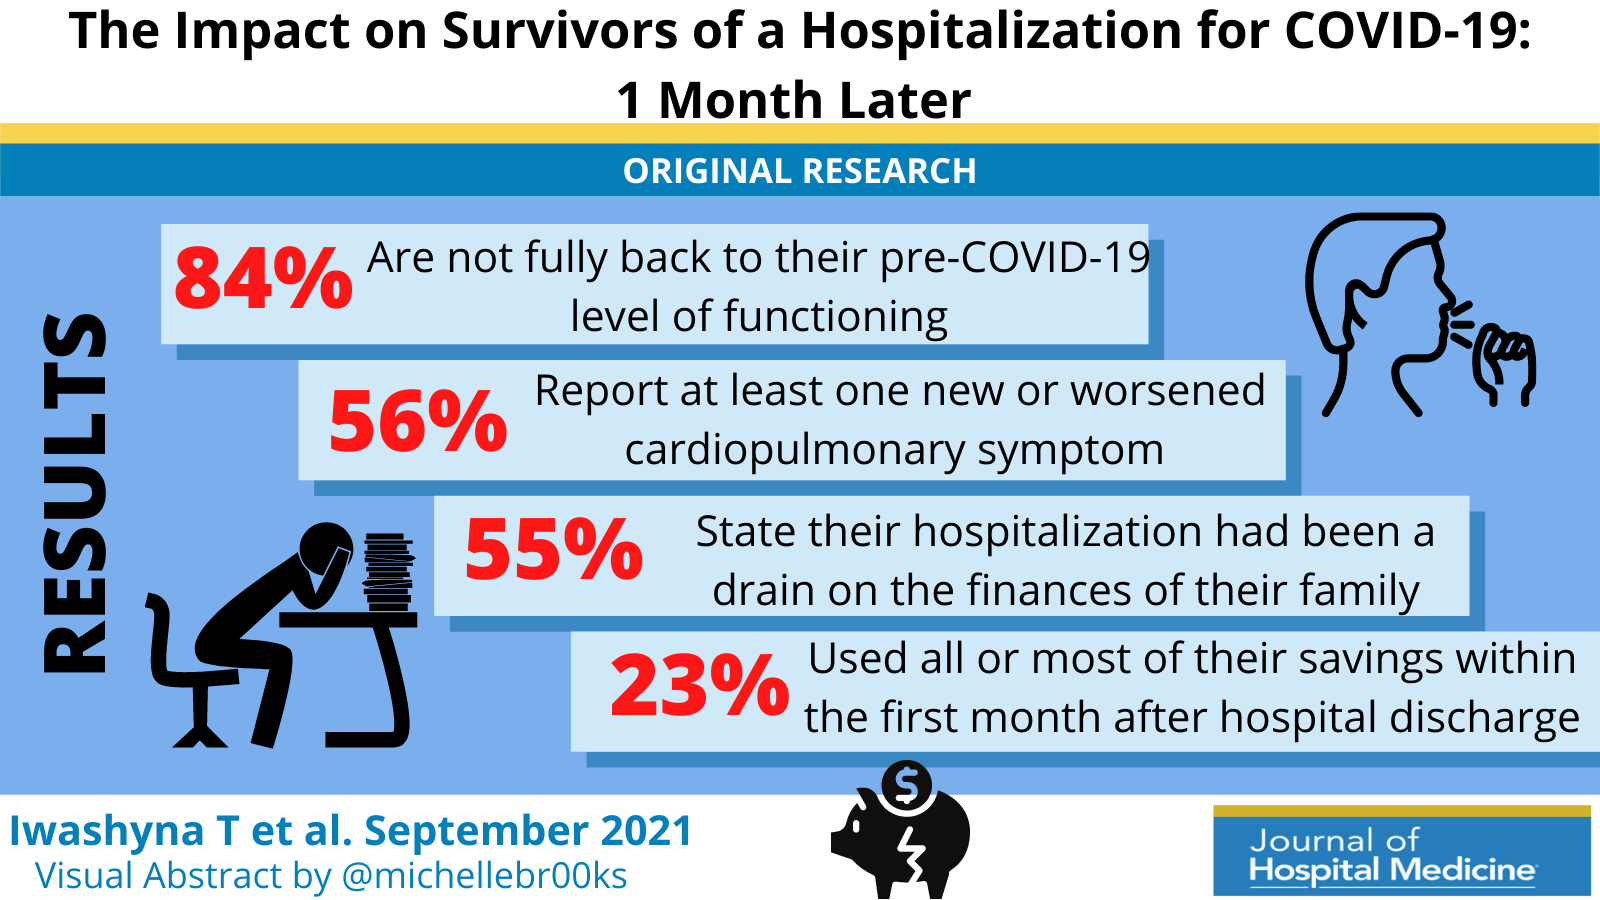 Continuing Cardiopulmonary Symptoms, Disability, and Financial Toxicity 1 Month After Hospitalization for Third-Wave COVID-19: Early Results From a US Nationwide Cohort